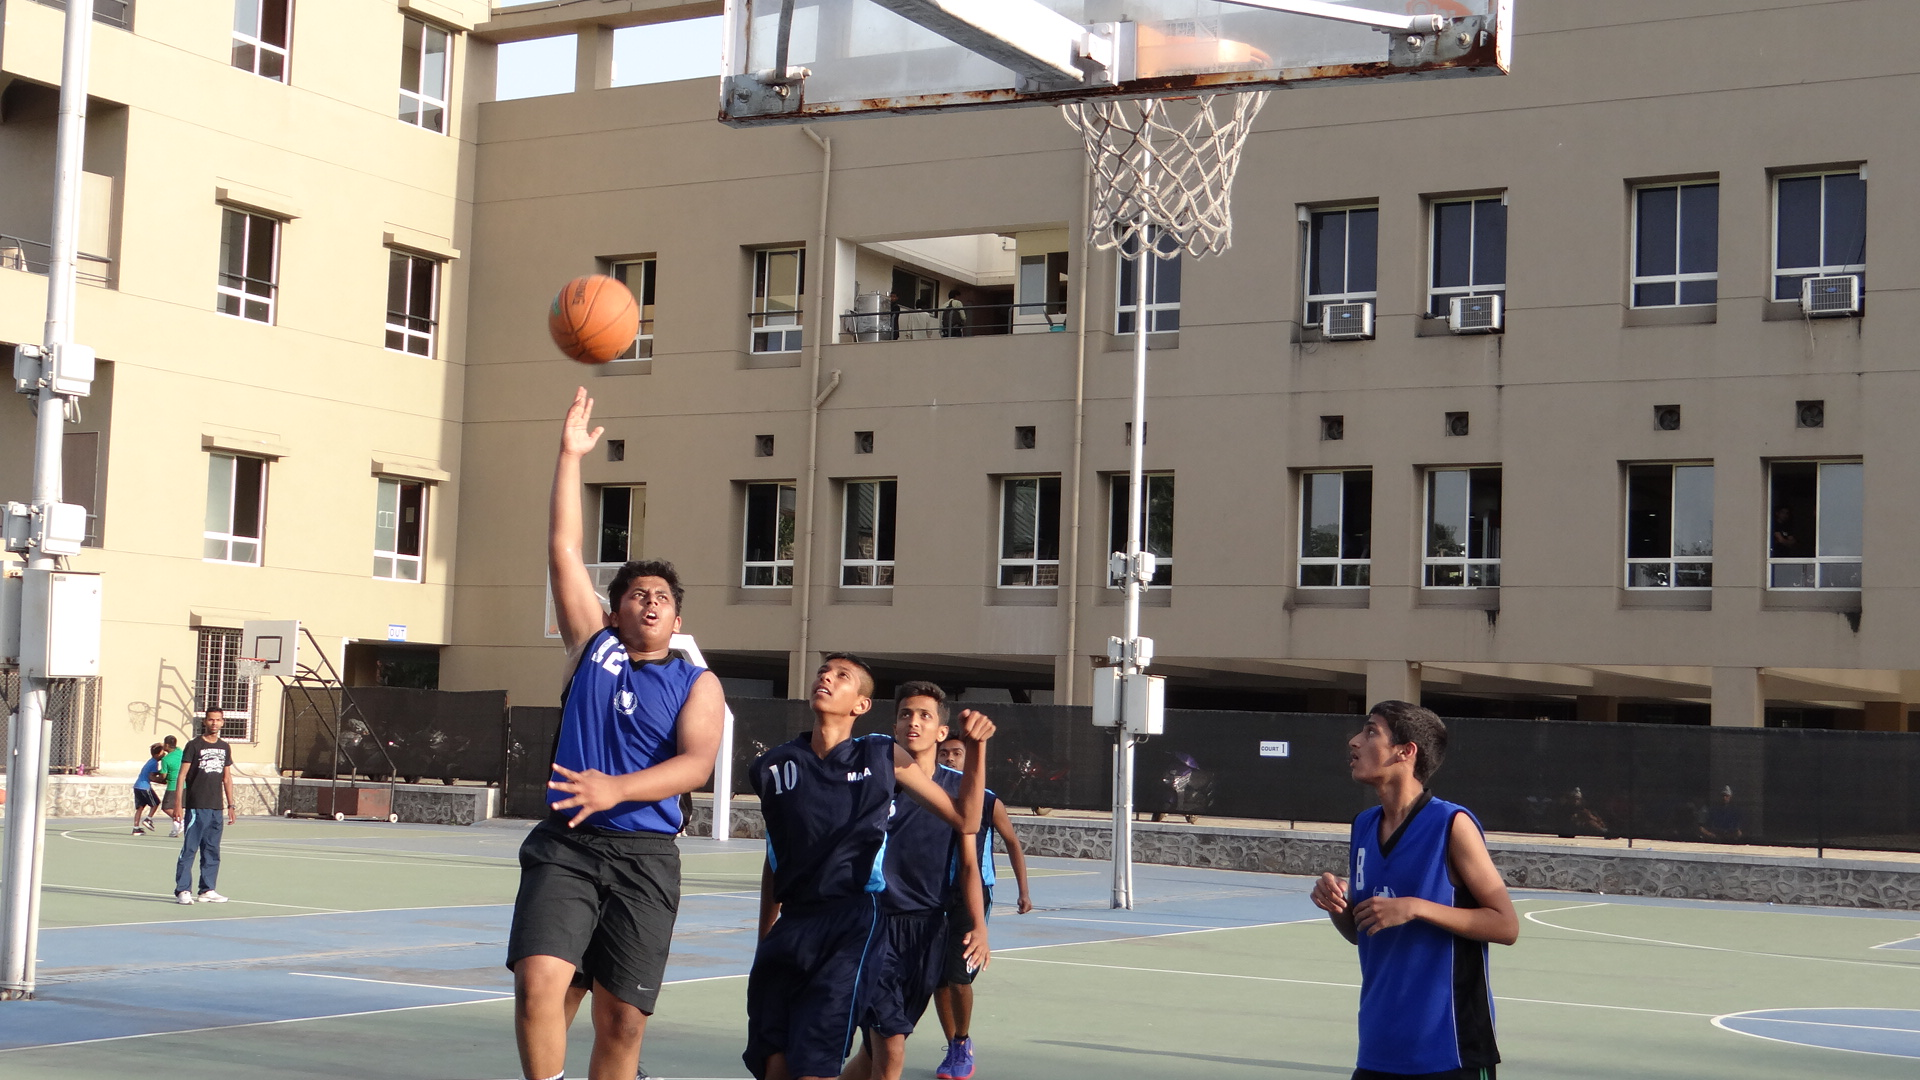 Boys match between LNBA (Navy Blue) and Deccan Gymkhana 'B' (Sky Blue).